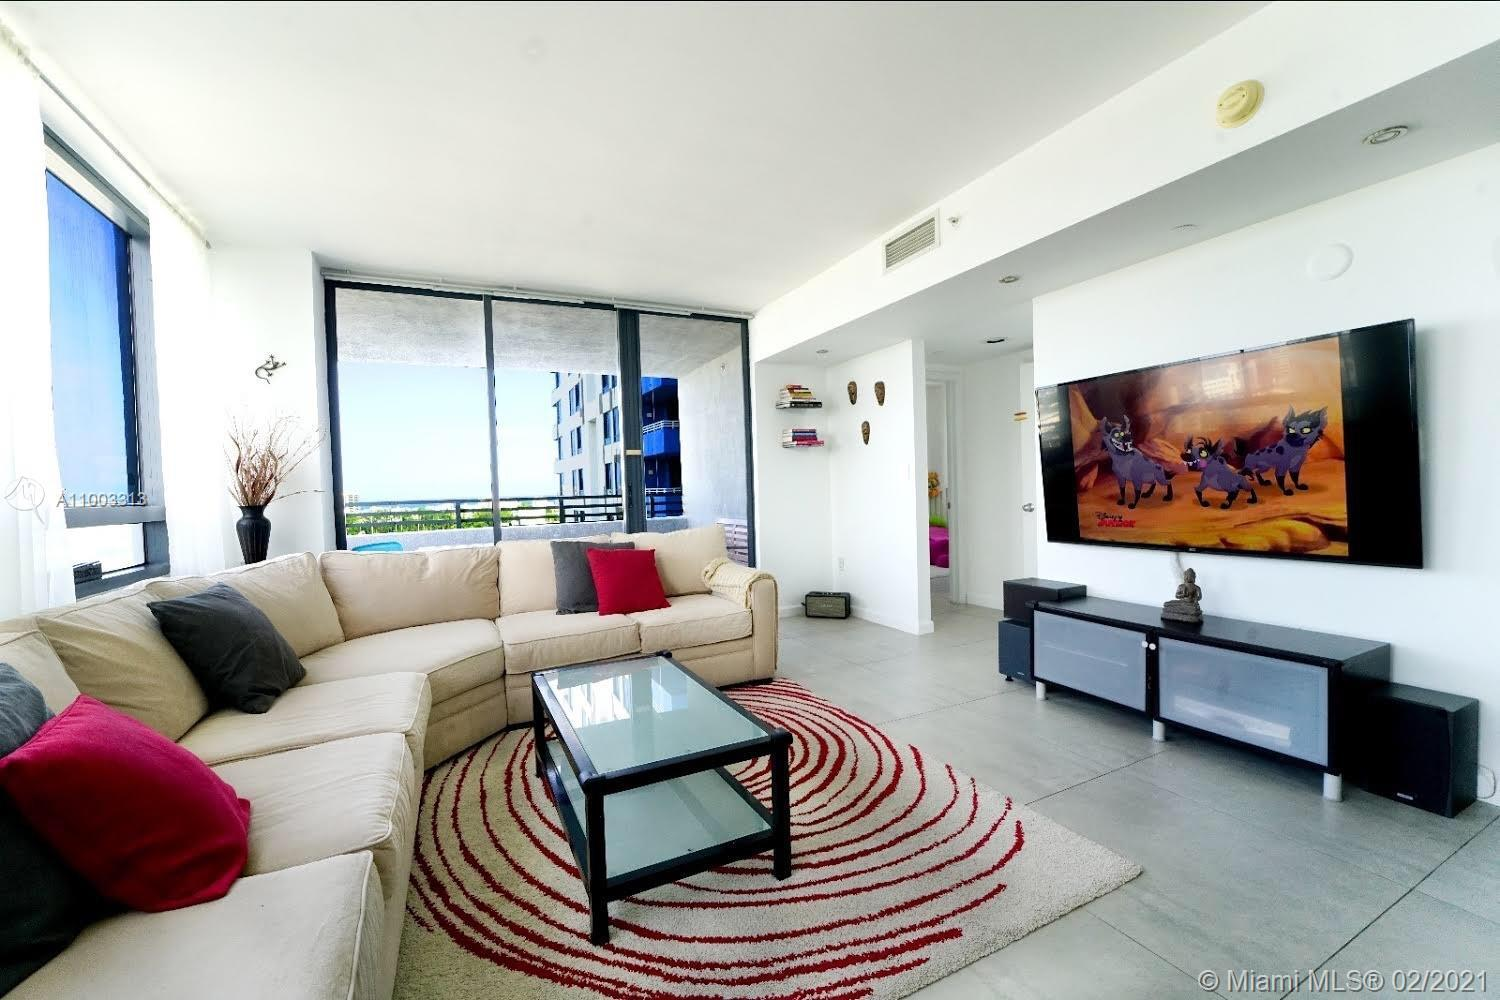 PRICE IMPROVED * BRING ALL OFFERS * Luxury unit in prestigious The Waverly in SoBe. Central & corner